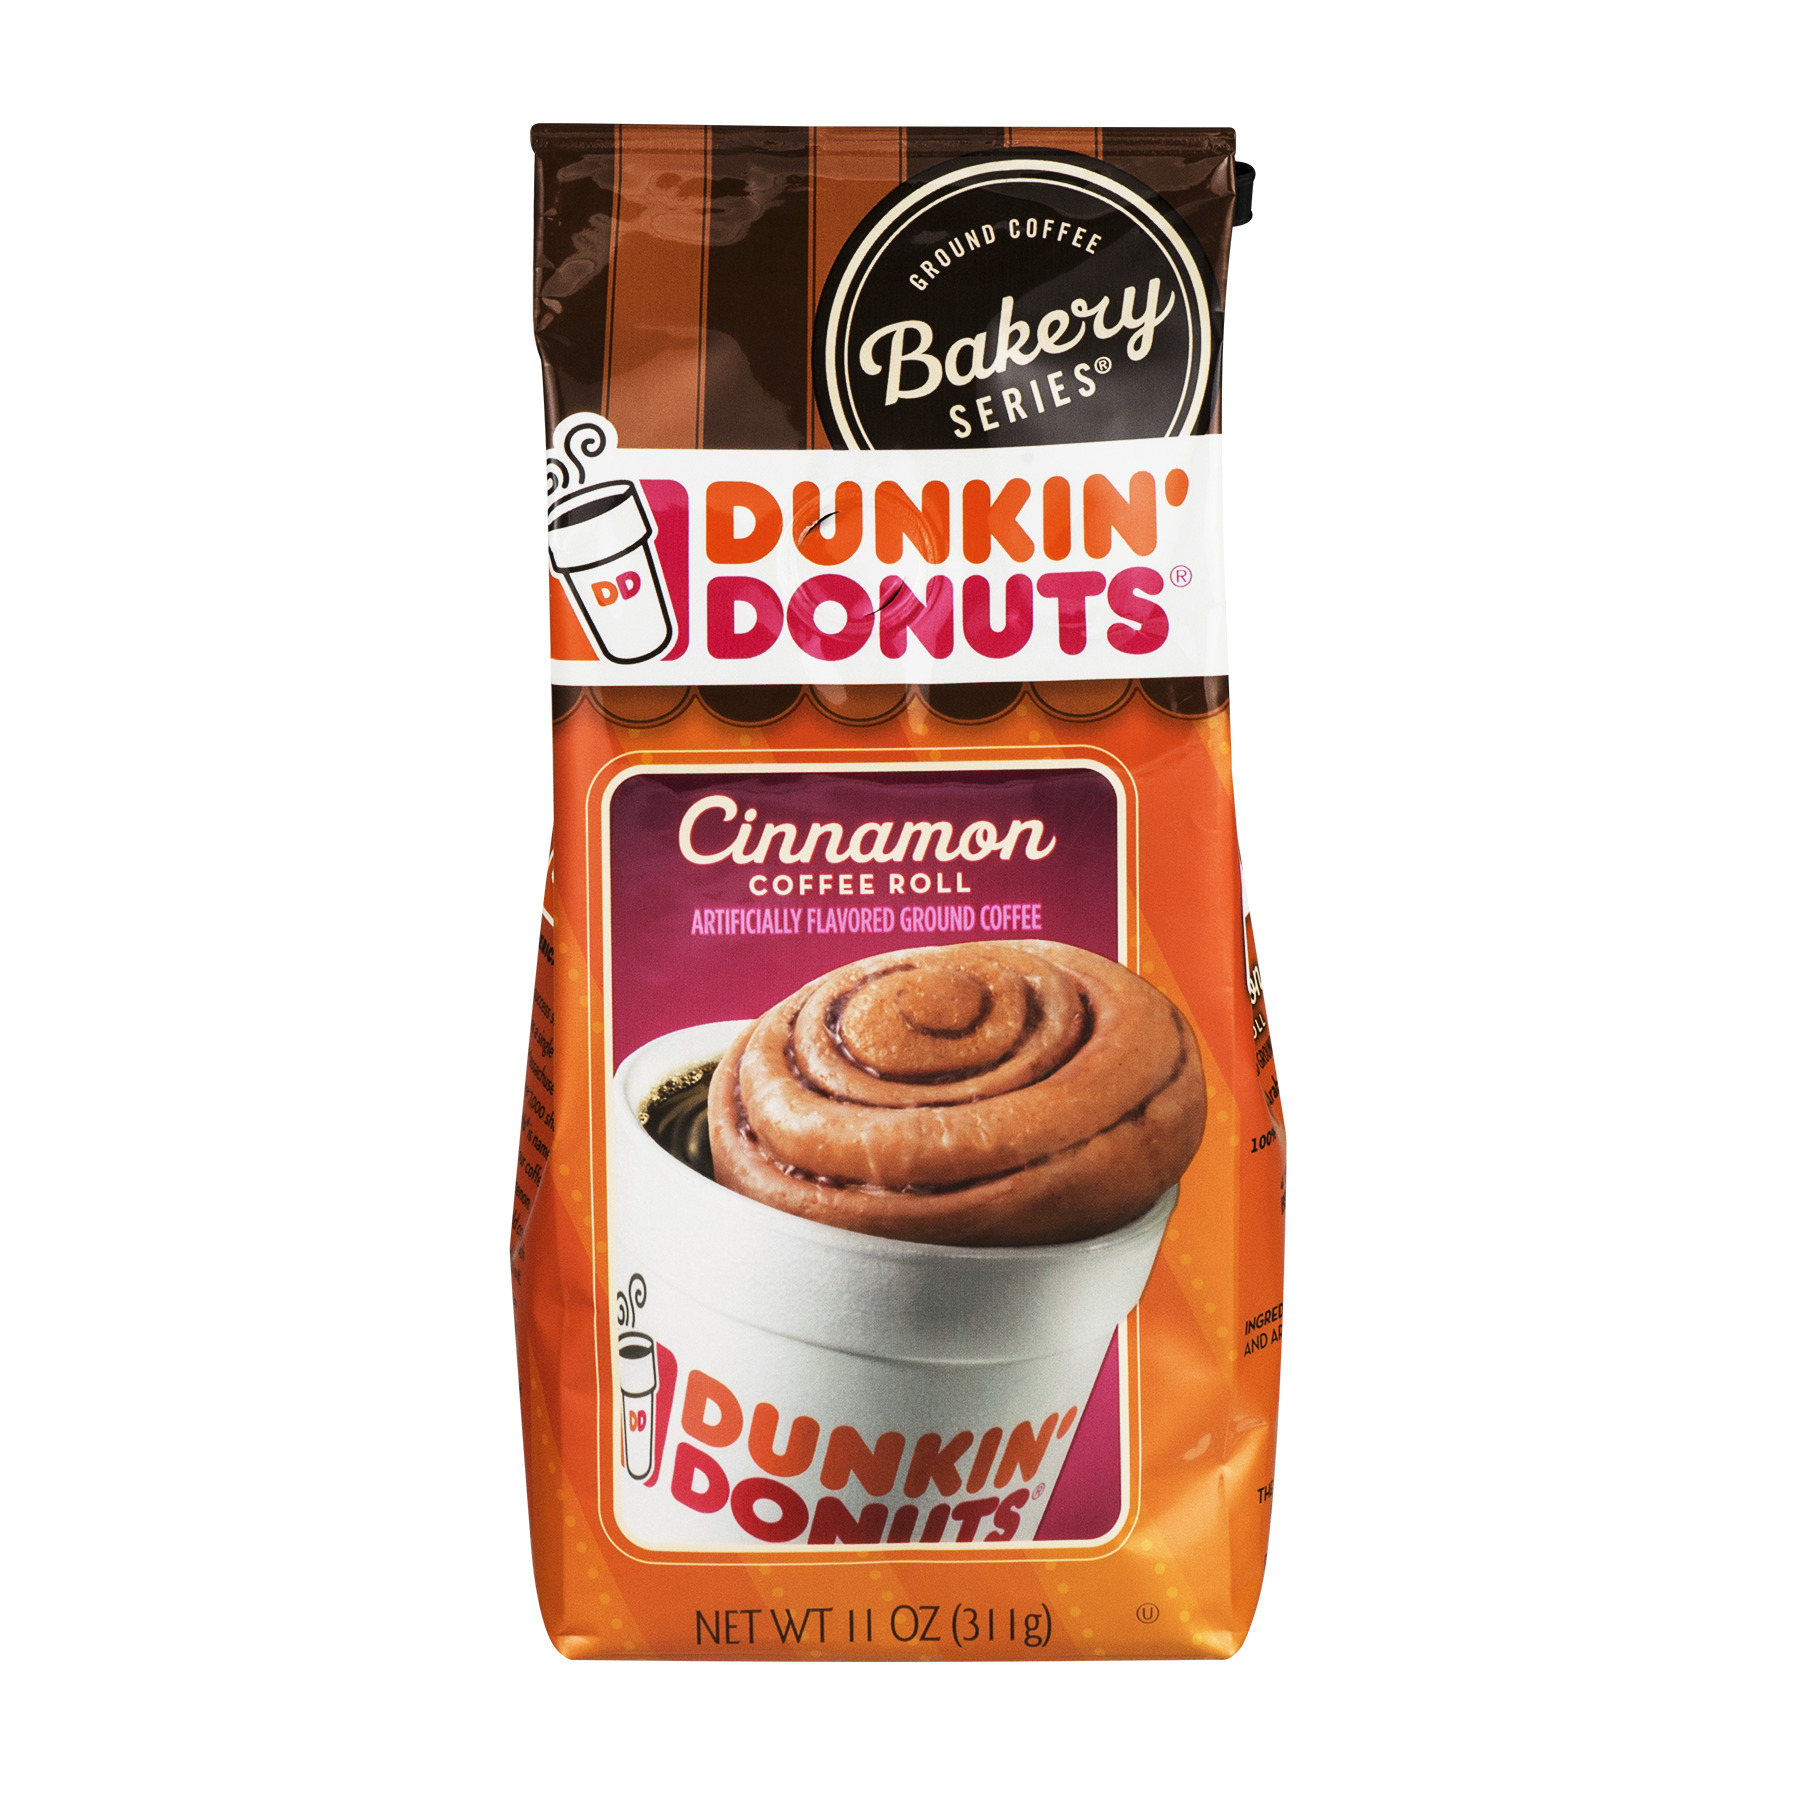 Dunkin' Donuts Cinnamon Coffee Roll Artificially Flavored Ground Coffee, 11 oz